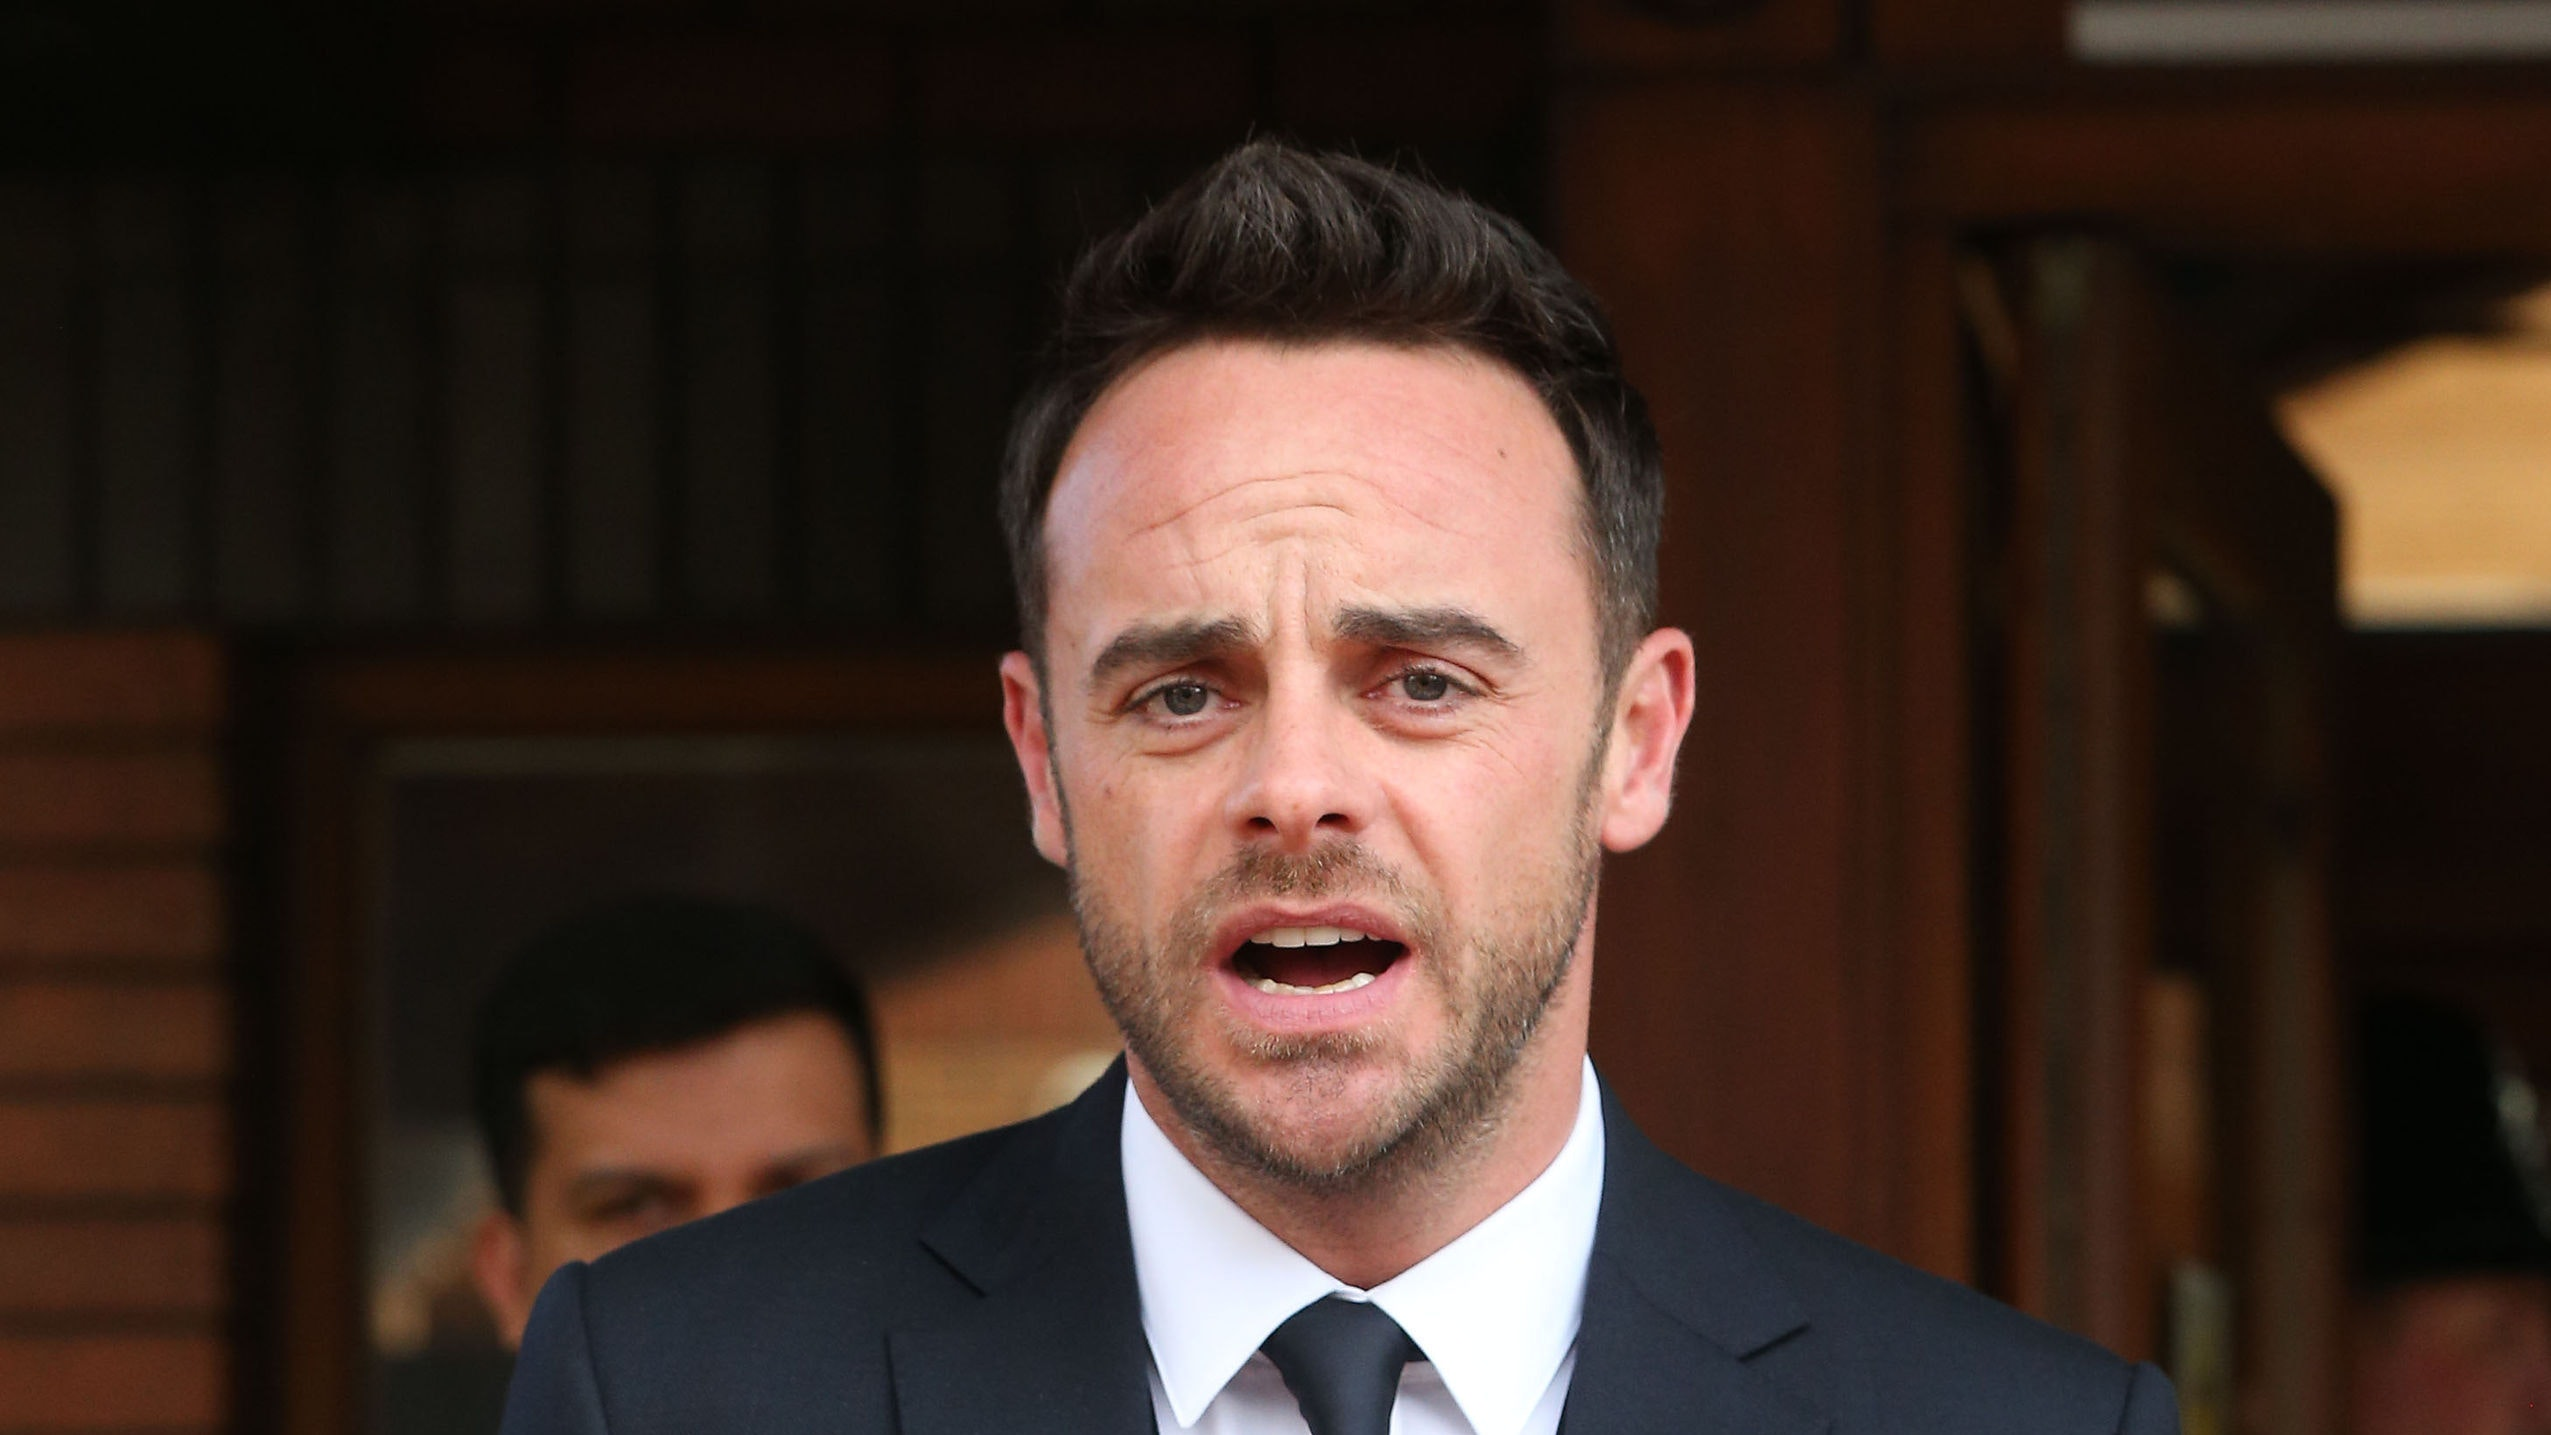 Ant McPartlin set to return to Britain's Got Talent this week